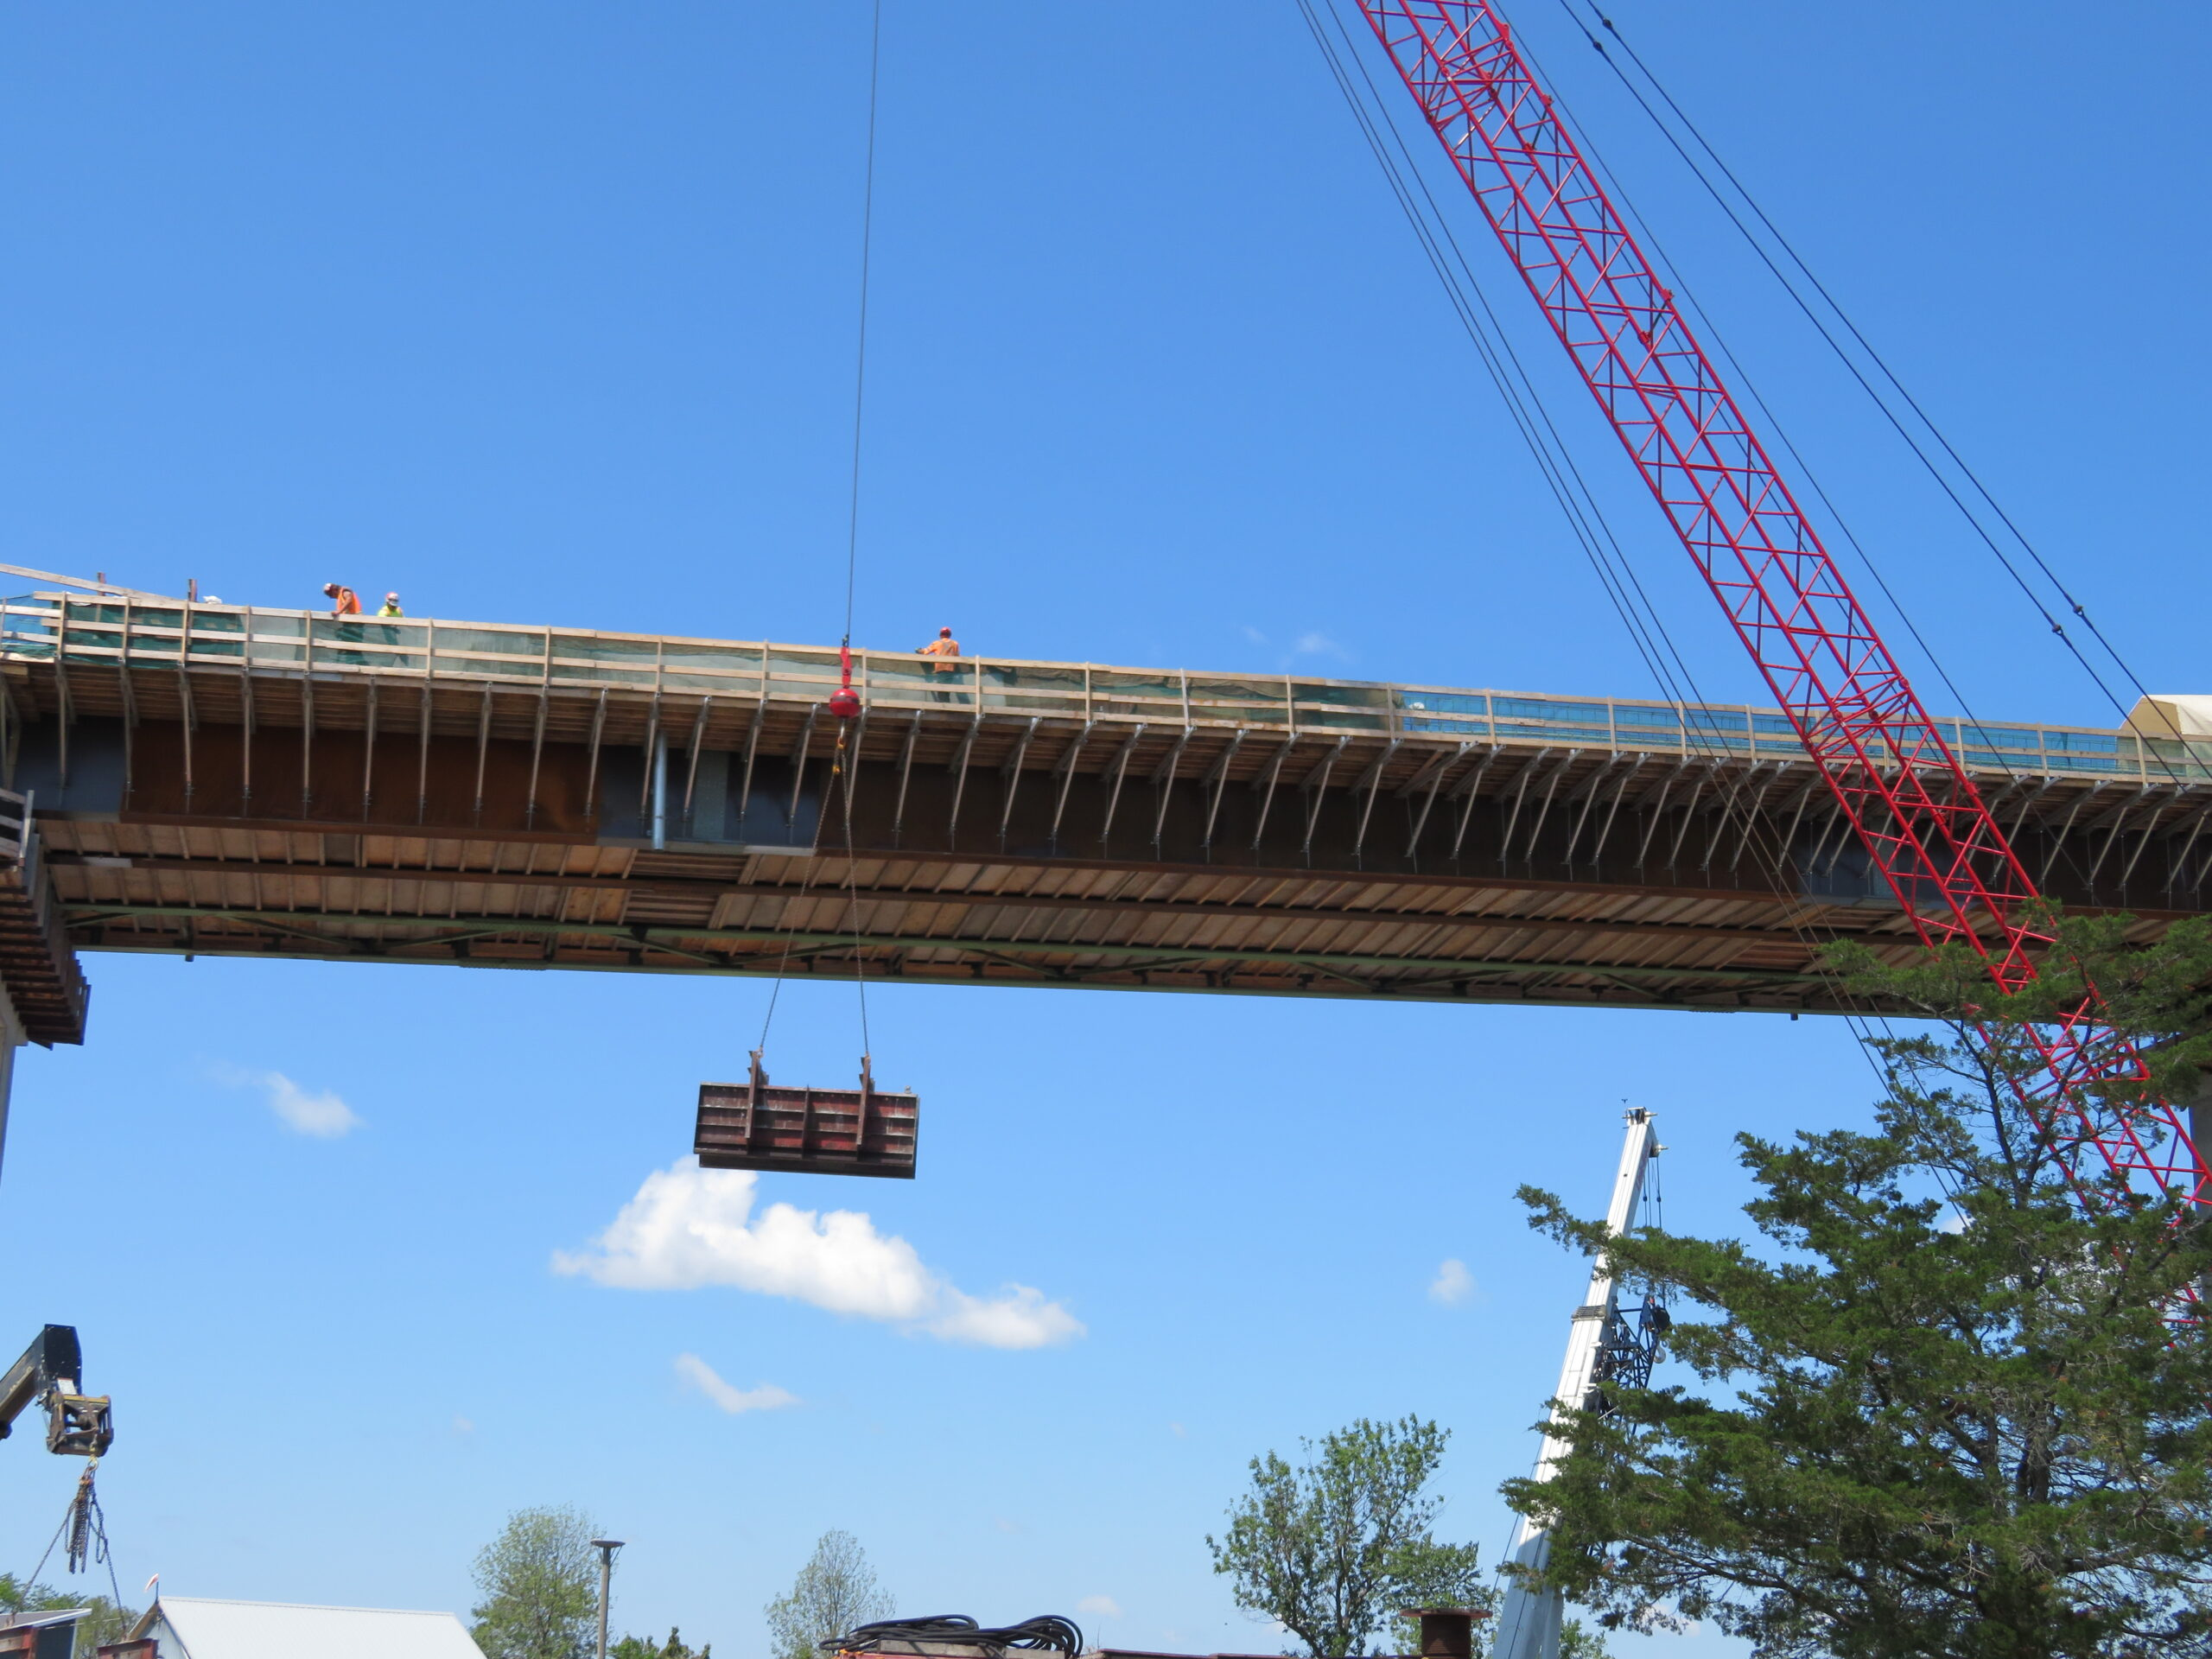 110-ton crane lowering the formwork from the deck